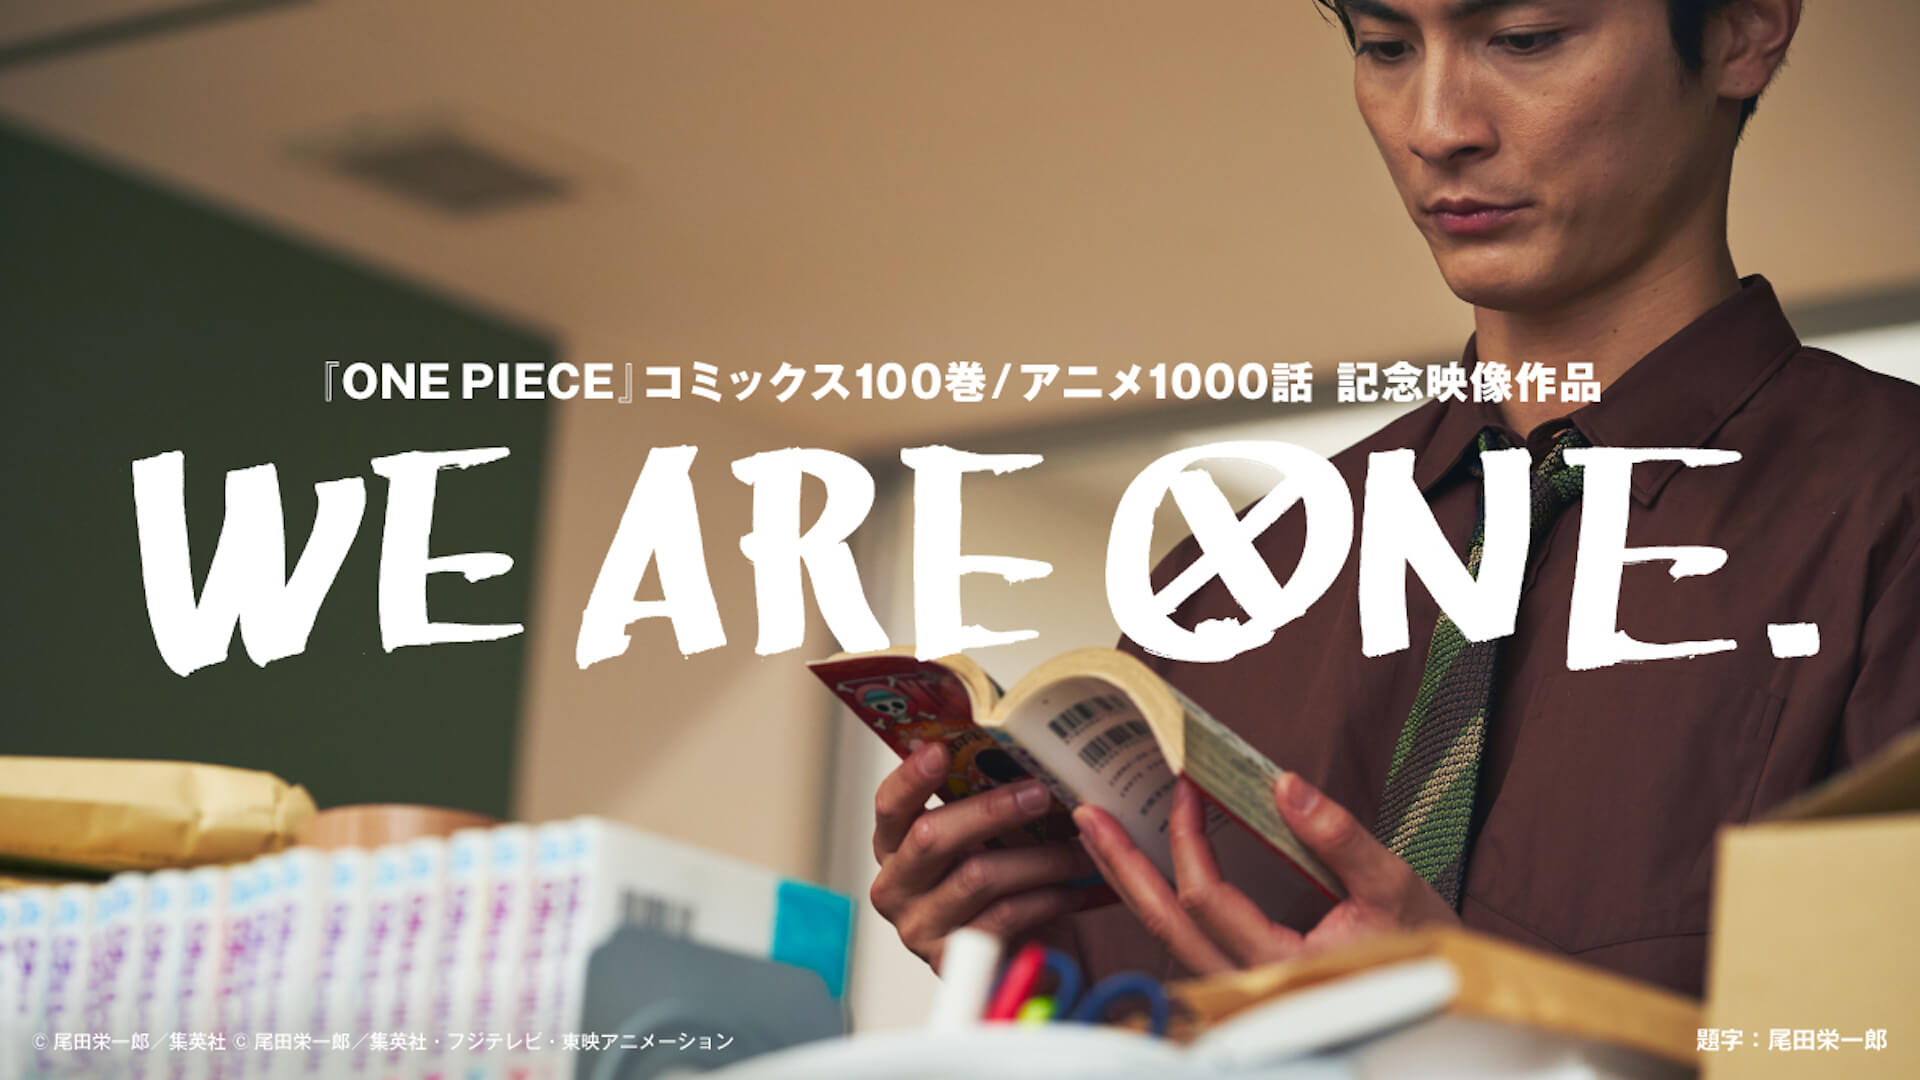 『ONE PIECE』コミックス100巻&アニメ1000話記念!実写×アニメの豪華映像作品『WE ARE ONE.』プロジェクトが解禁 art210722_radwimps_onepiece_5